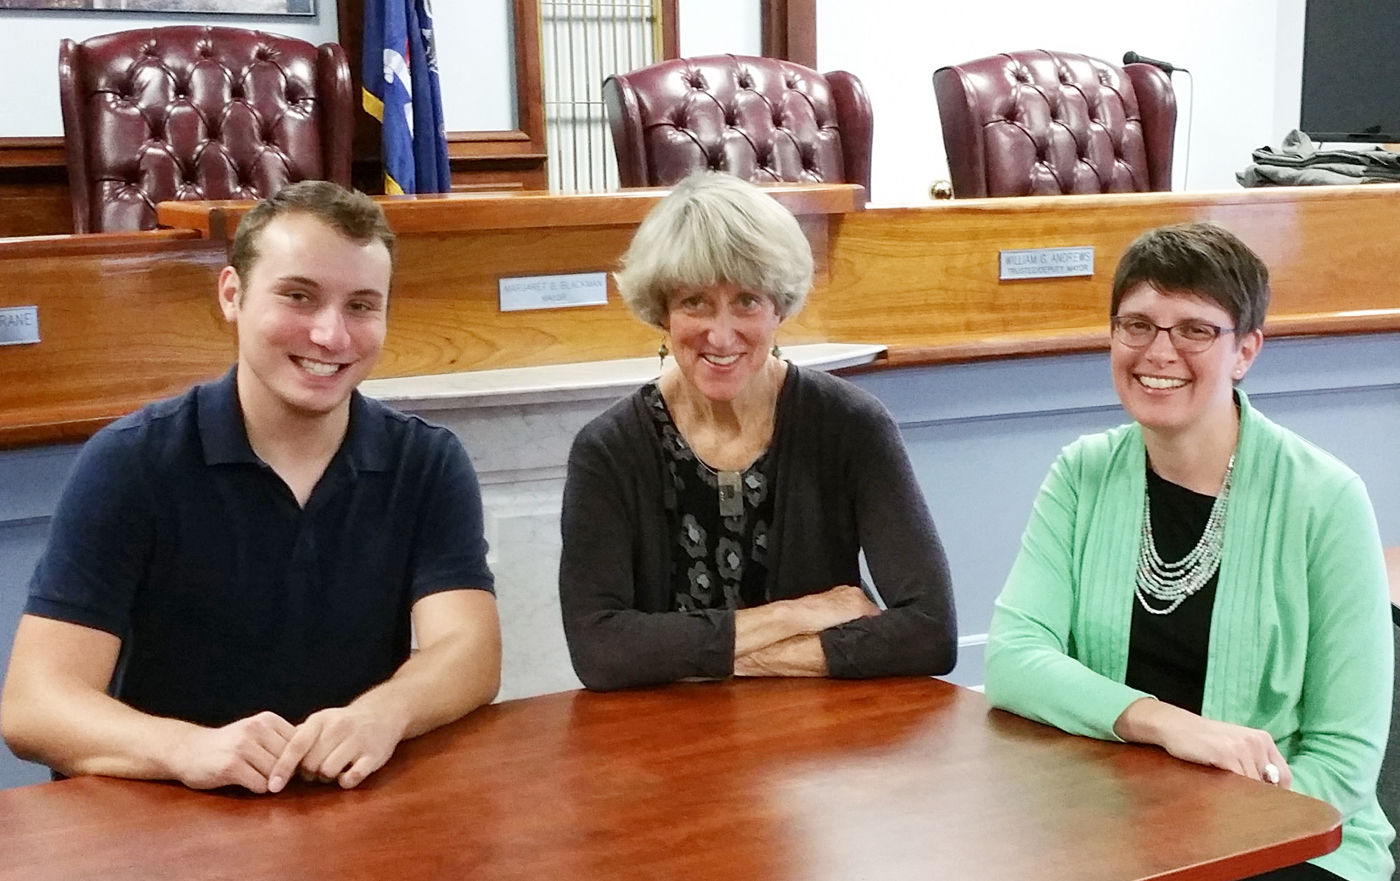 Justin Sullivan, Mayor Margay Blackman and Deputy Clerk/Treasurer Erica Linden meet weekly in the Brockport Village office building. Sullivan, a College at Brockport senior, recently started his internship working on media relations and social media for the Village. Photo by Dianne Hickerson